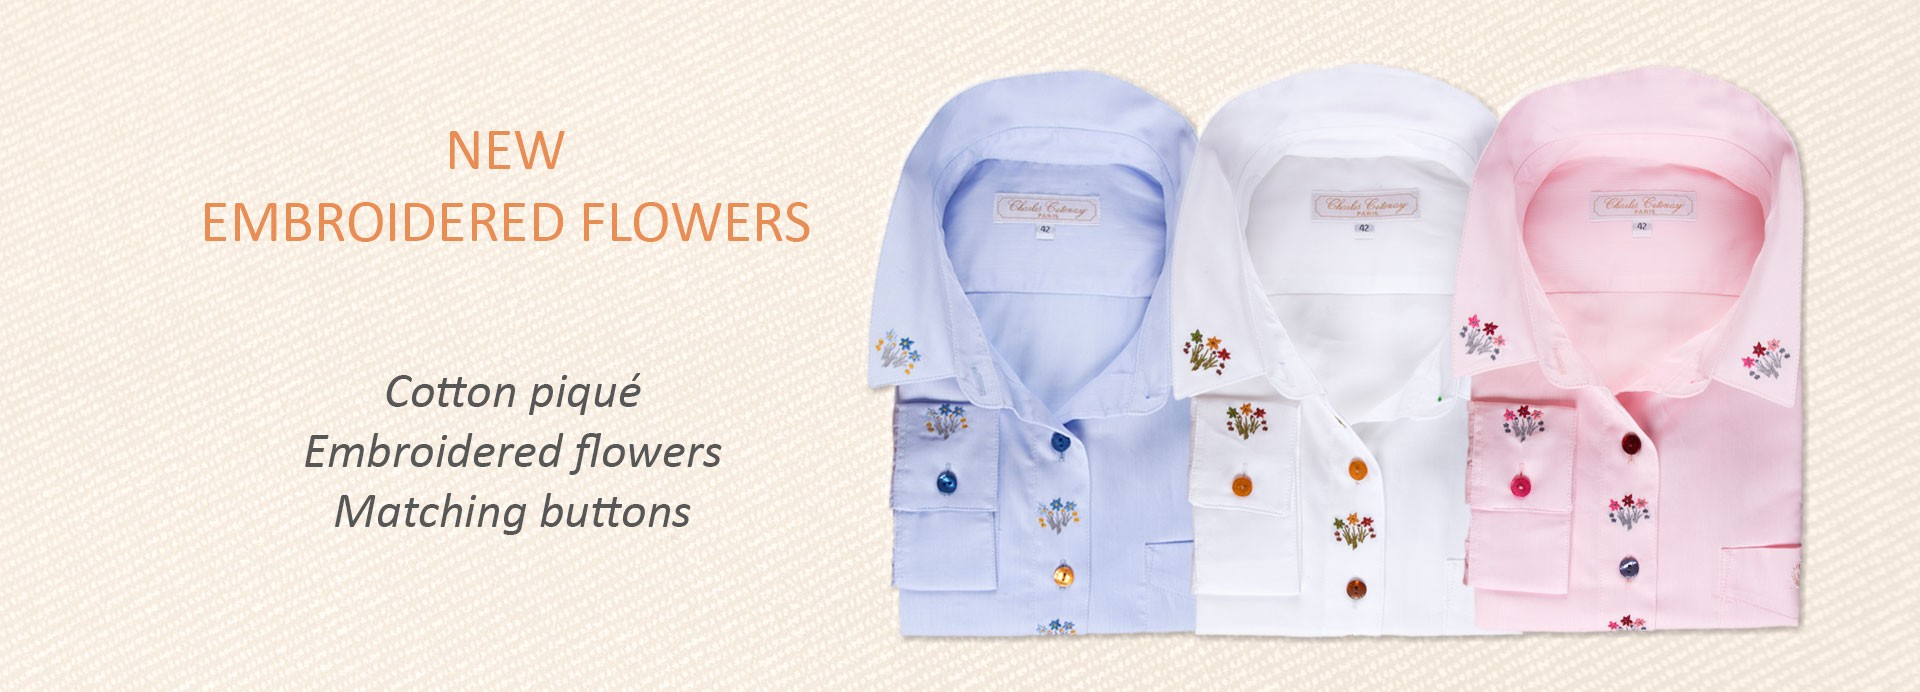 Embroidered flowers shirt